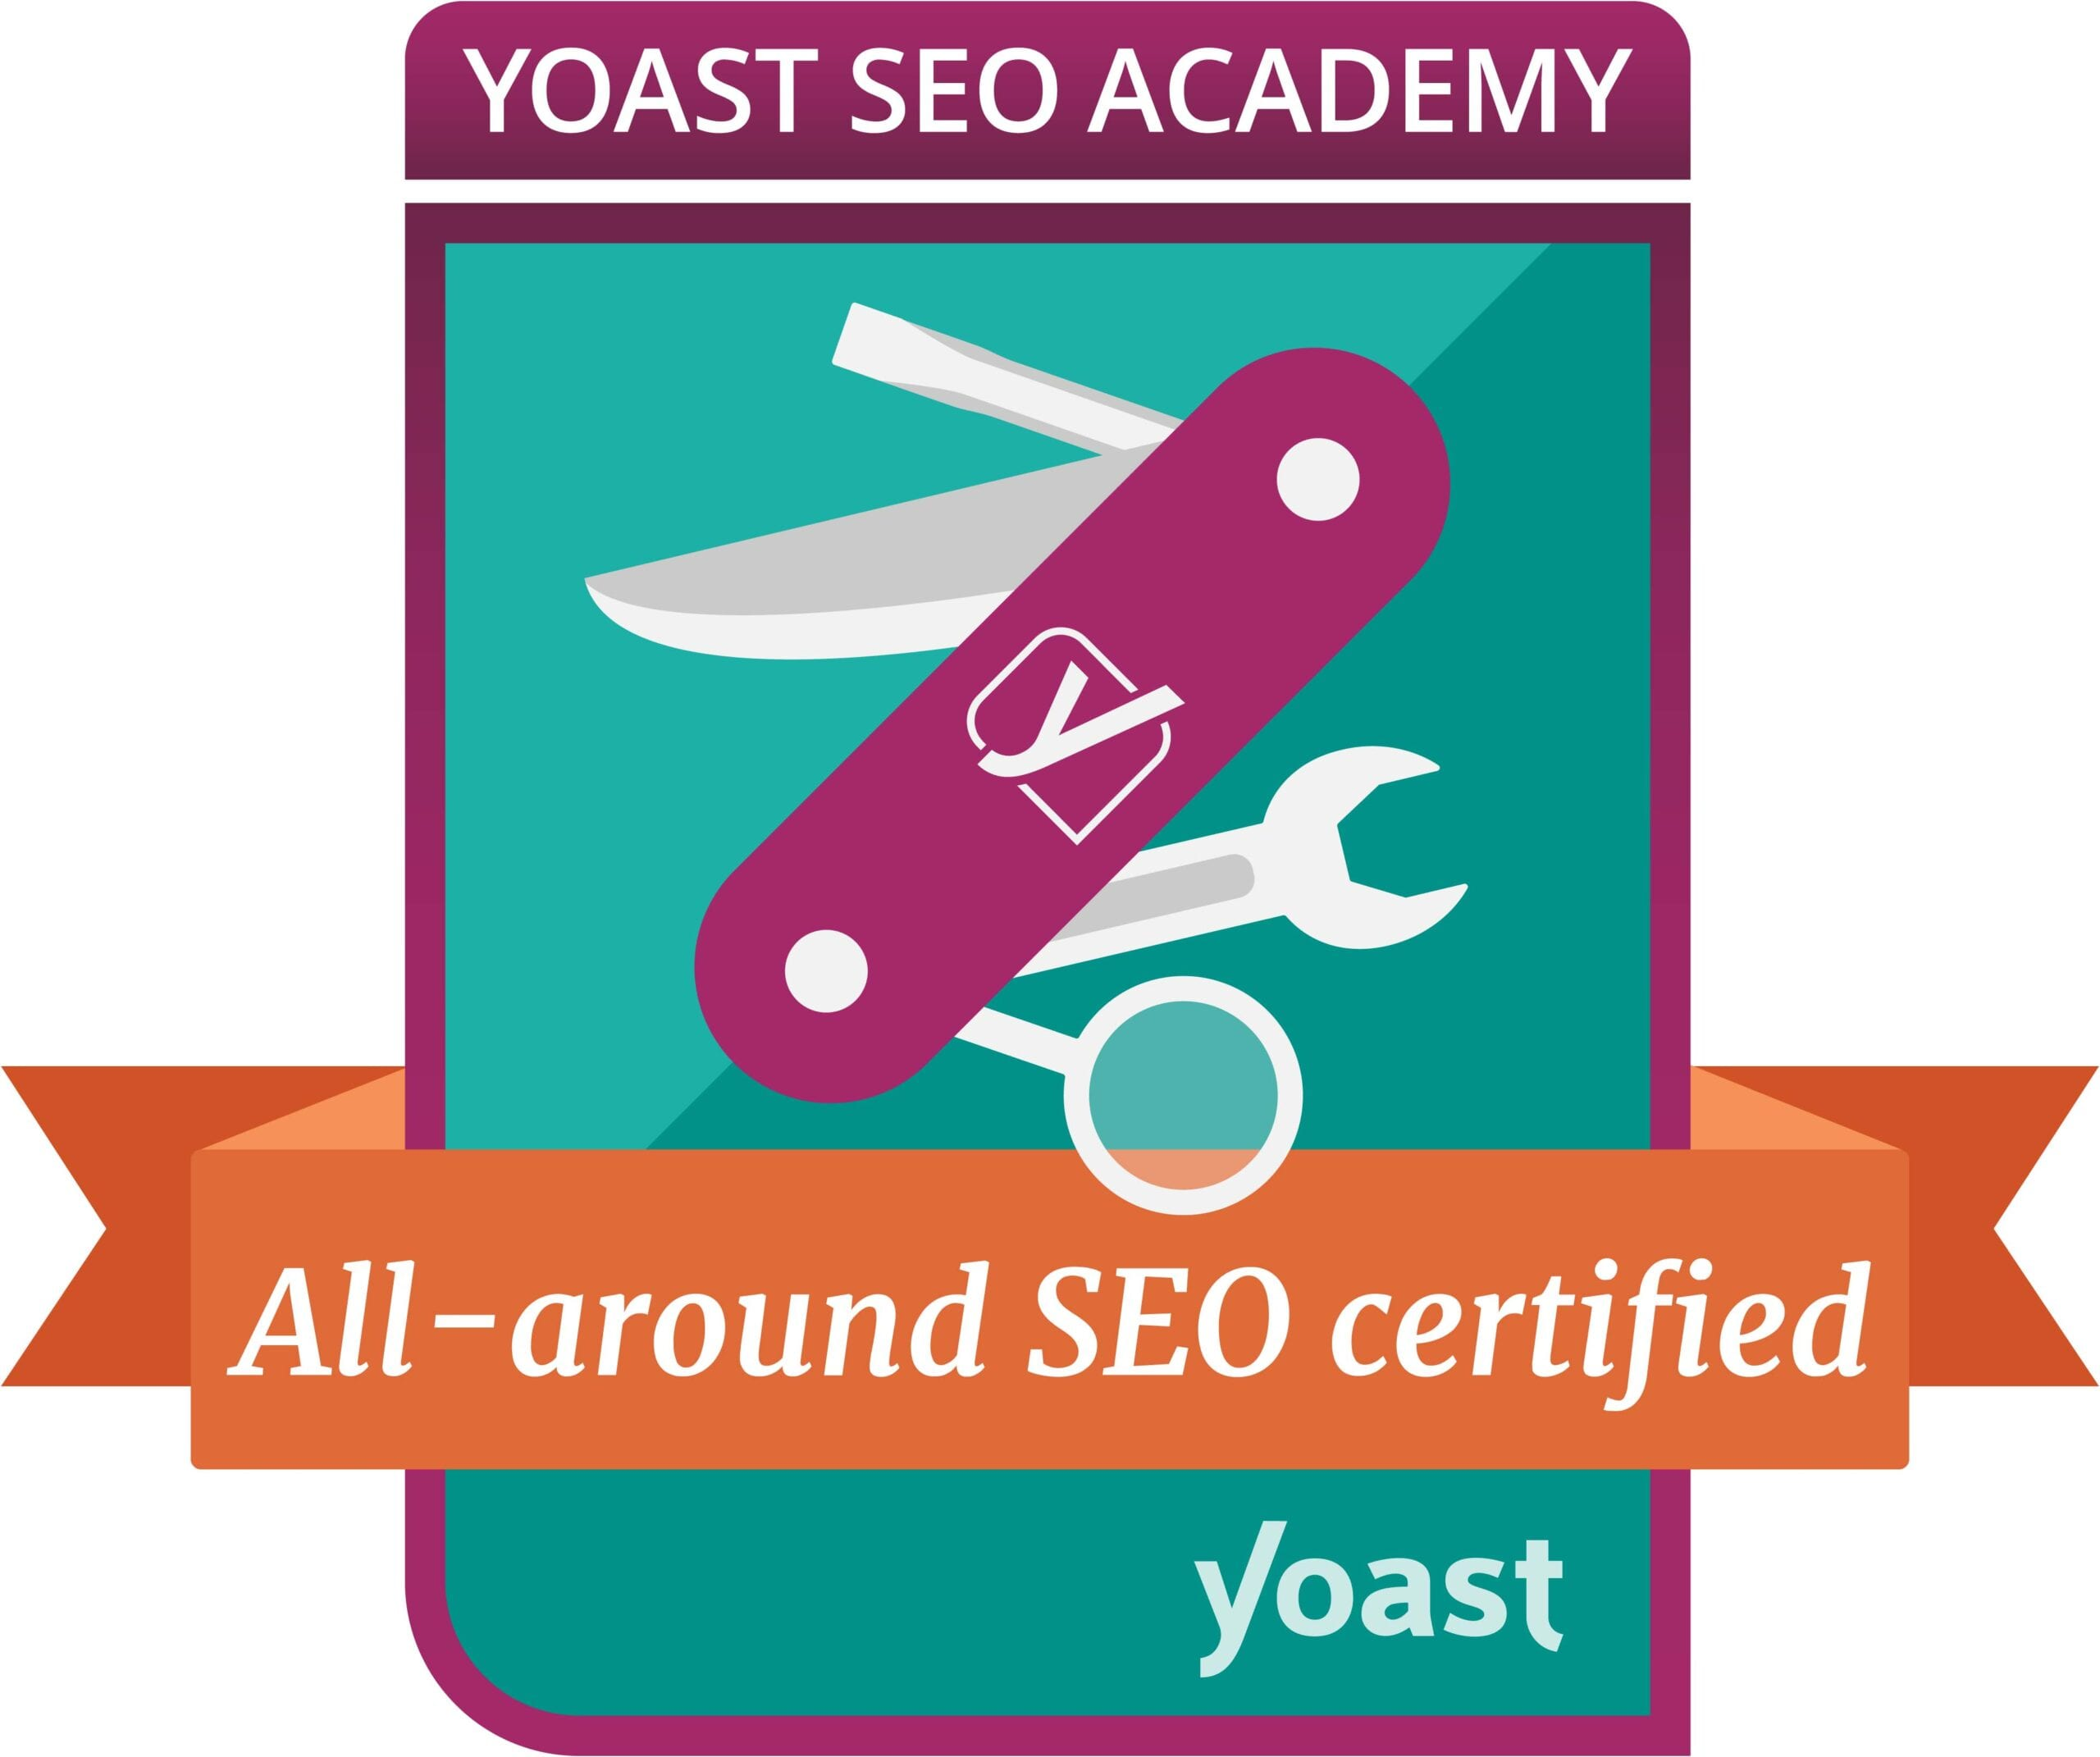 Drew Feldman successfully completed the All-around SEO course!